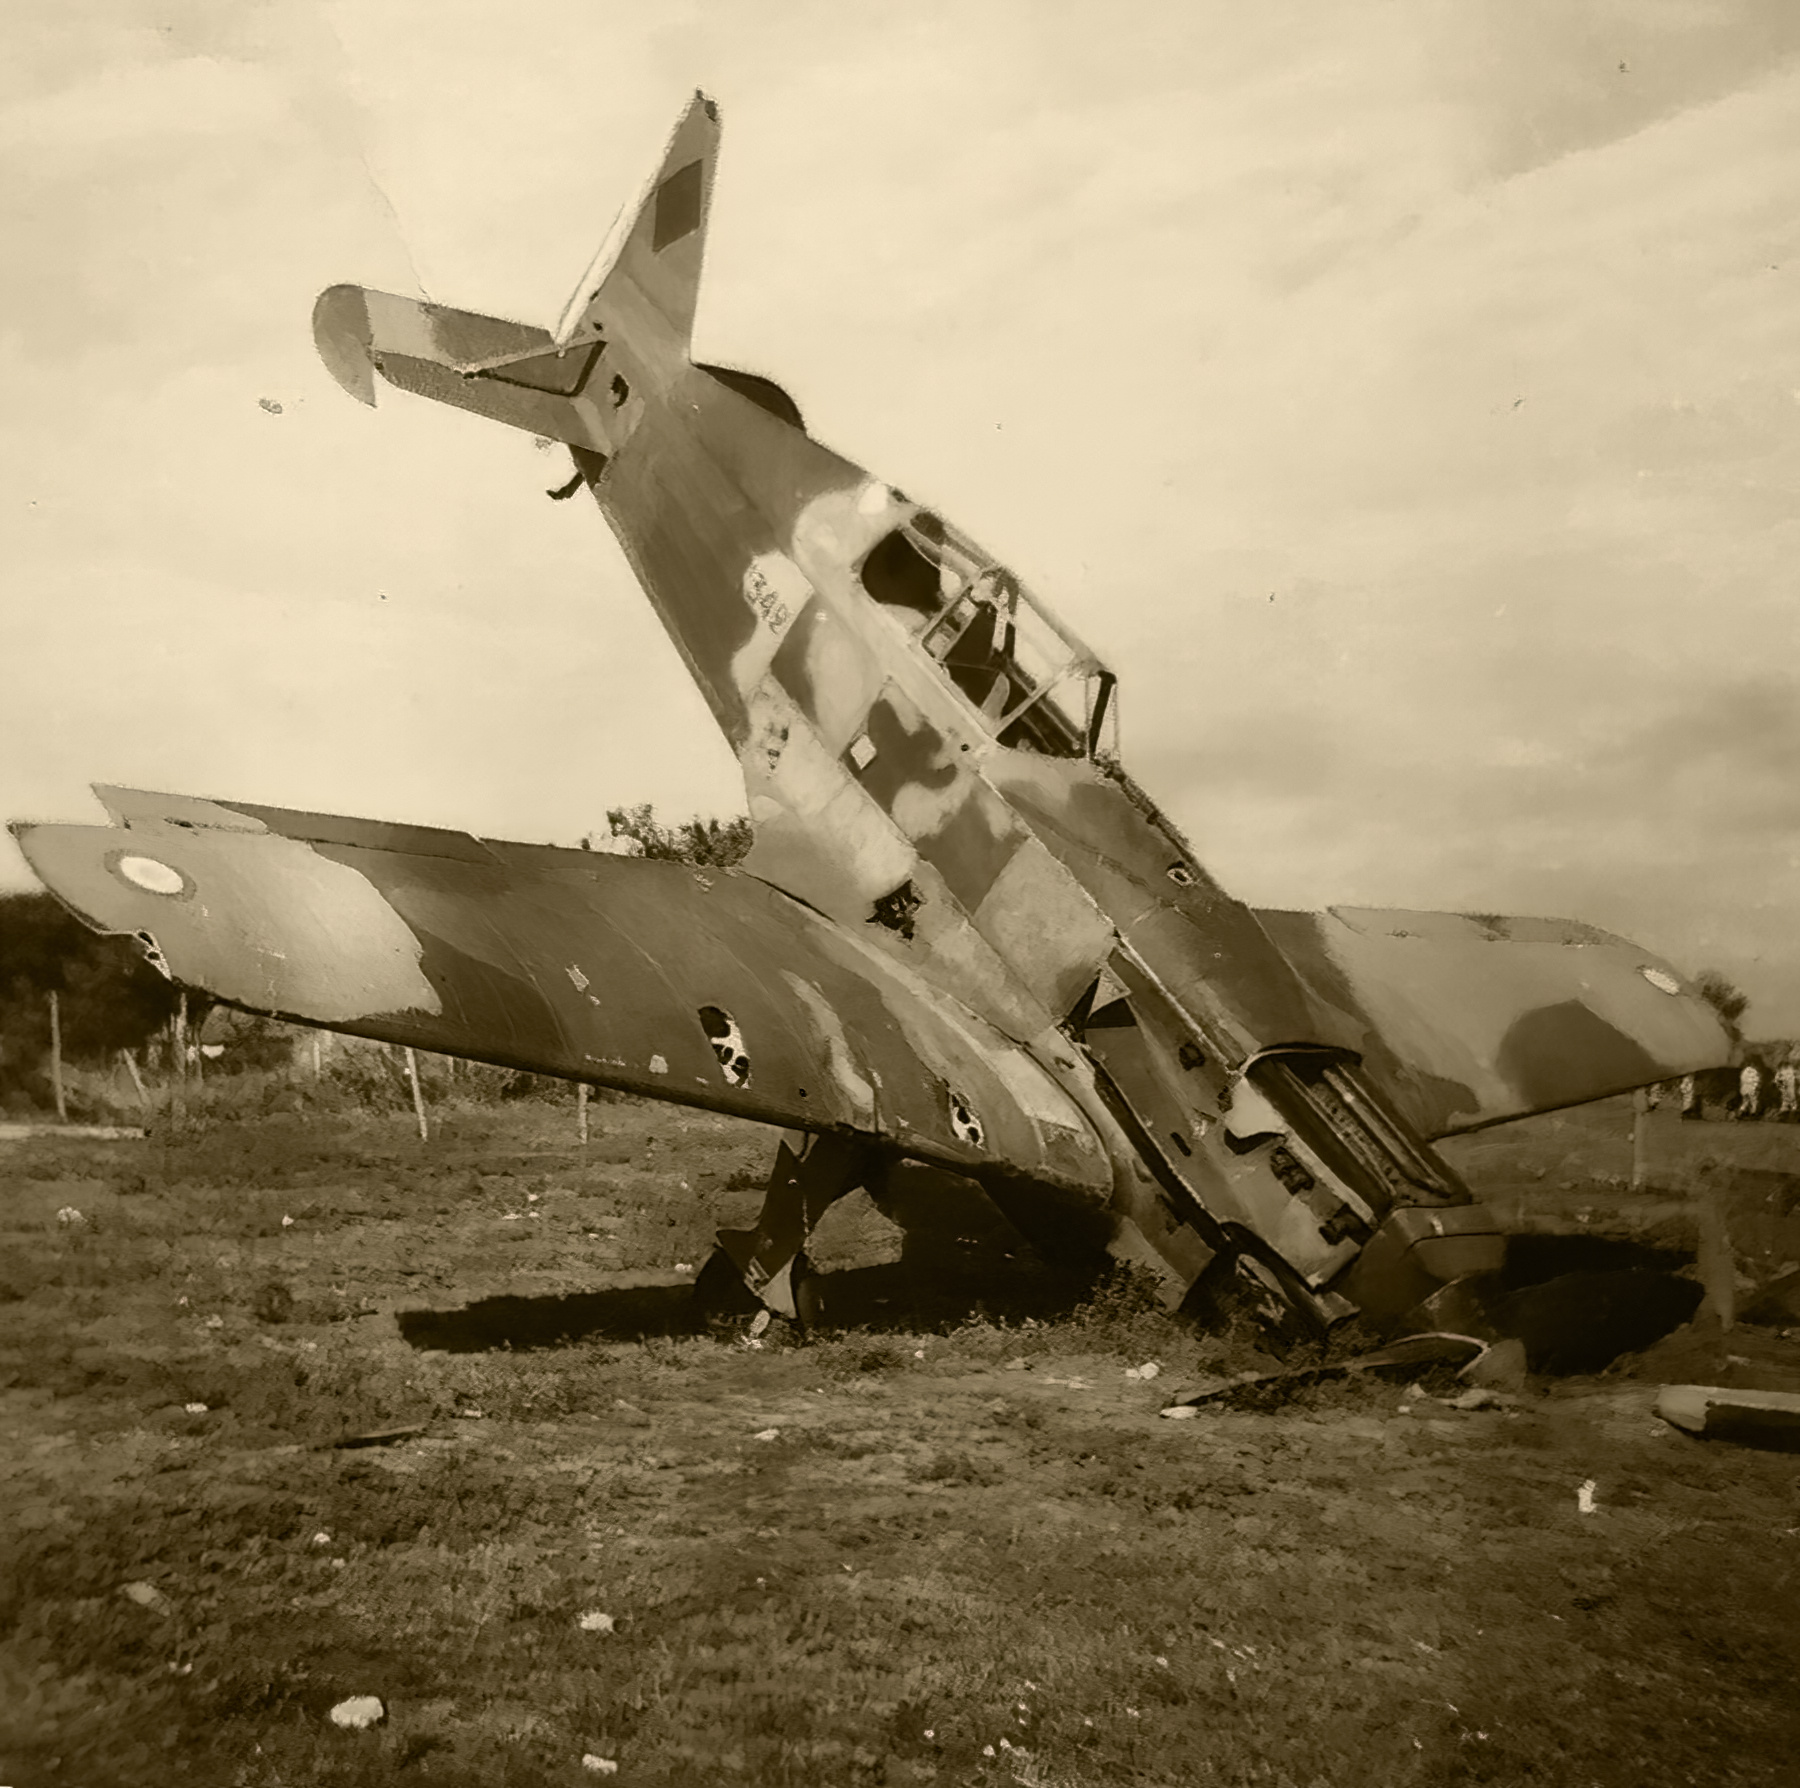 French Airforce Morane Saulnier MS 406 destroyed whilst grounded France May Jun 1940 ebay 01